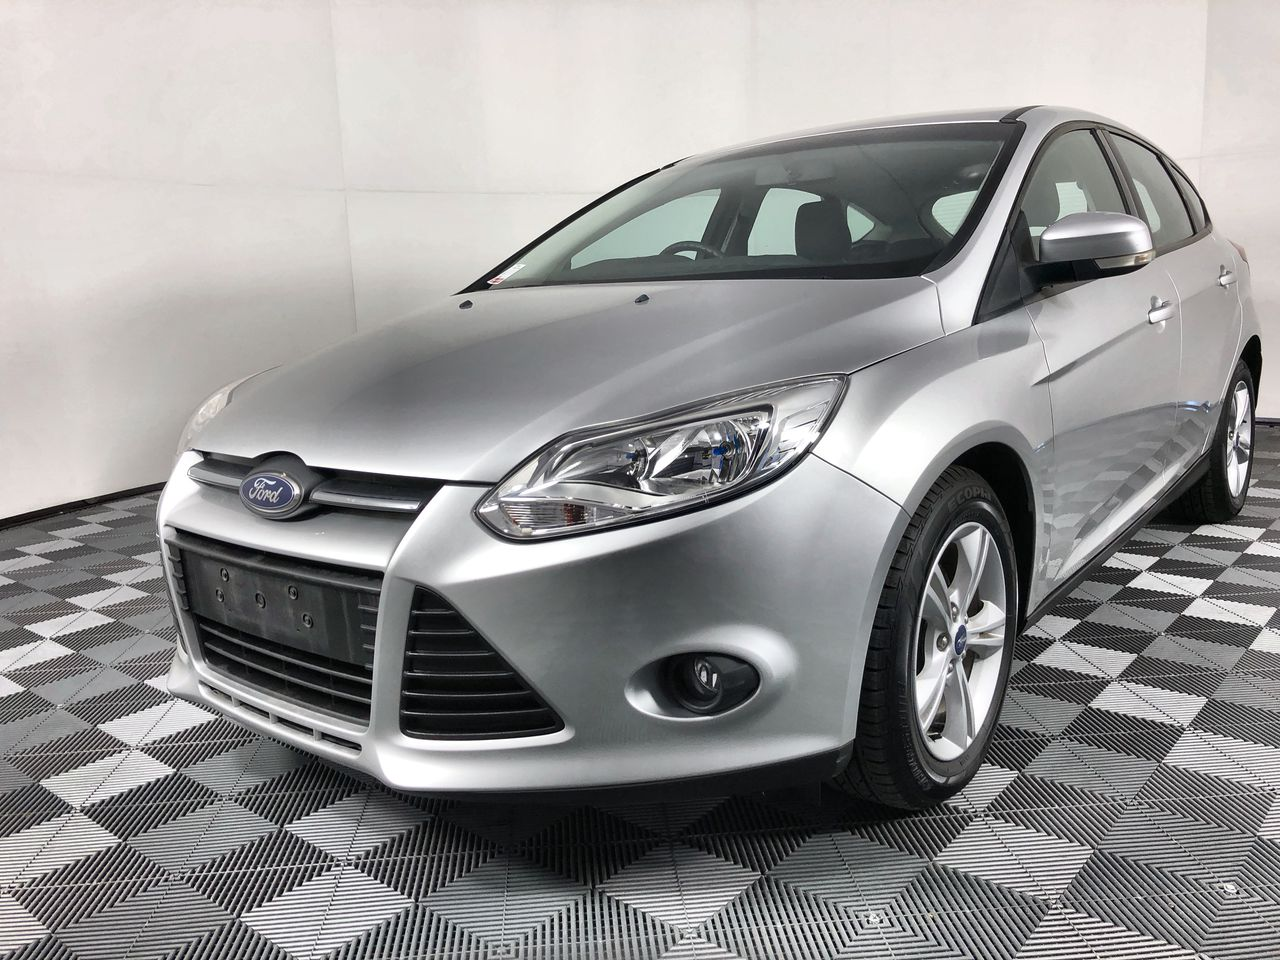 2014 Ford Focus Trend LW II Automatic Hatchback